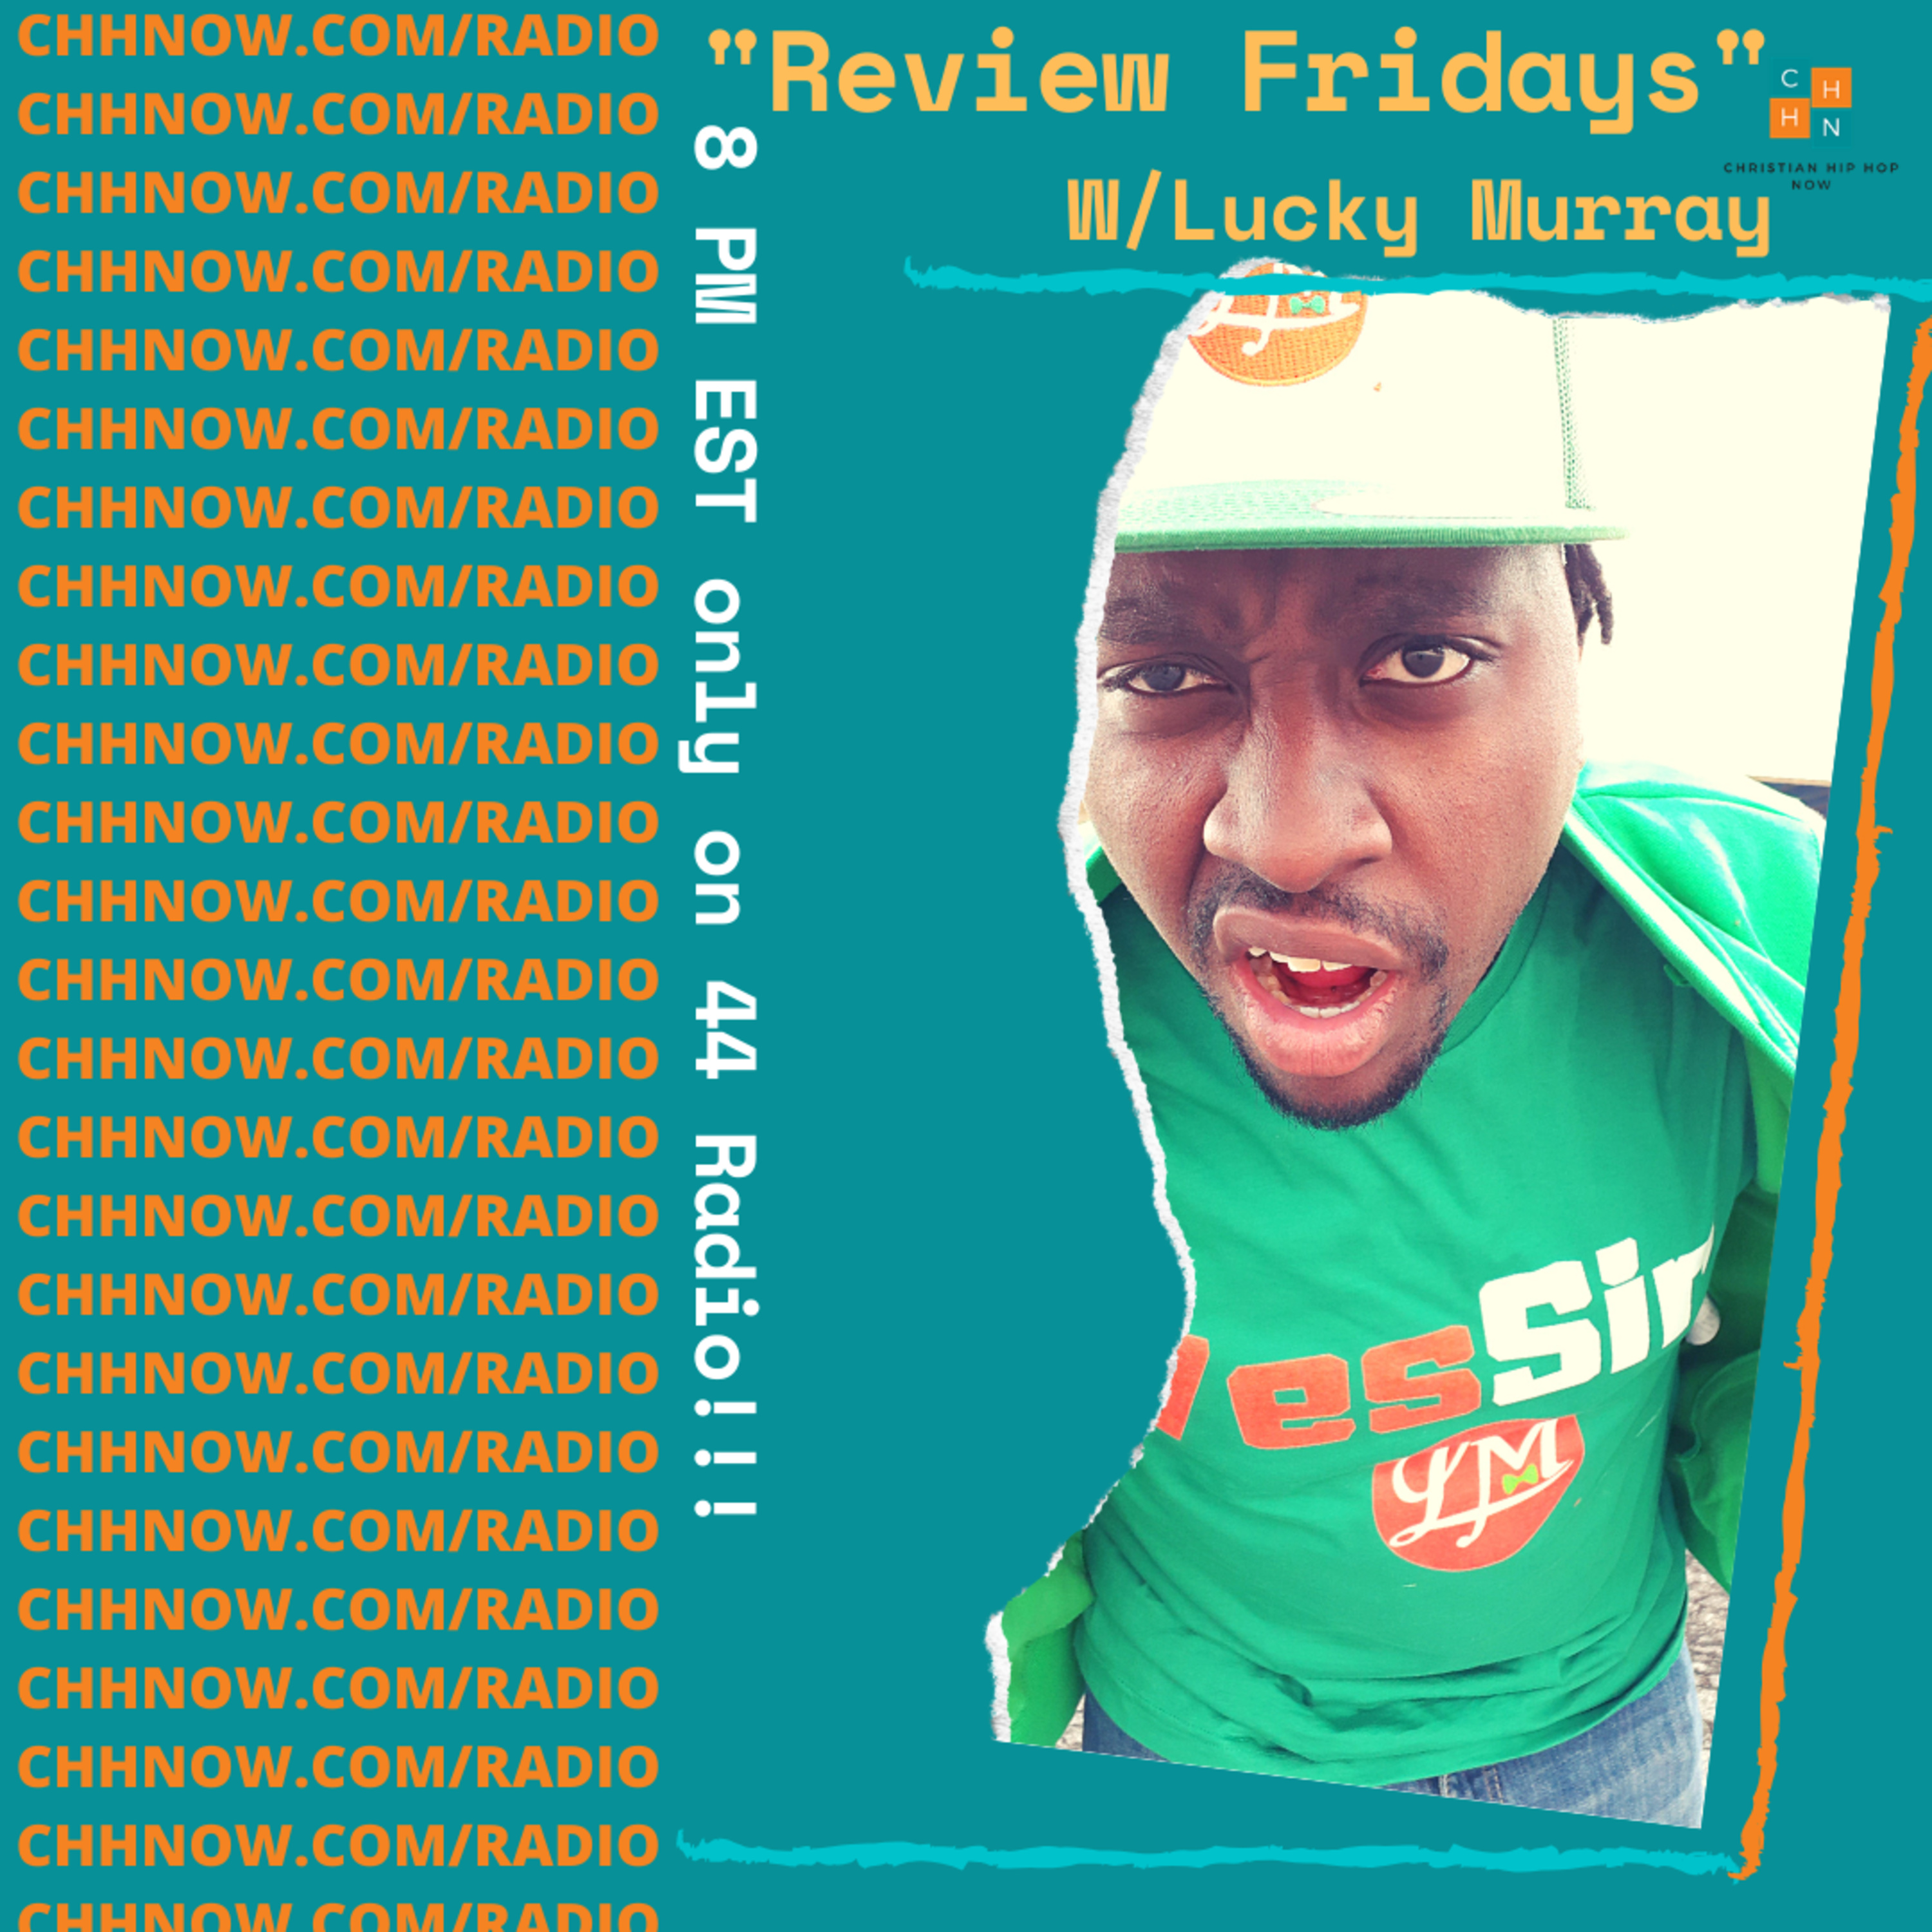 Review Friday's 7-17-2020 Independent Christian Hip-Hop On Christian Hip Hop Now